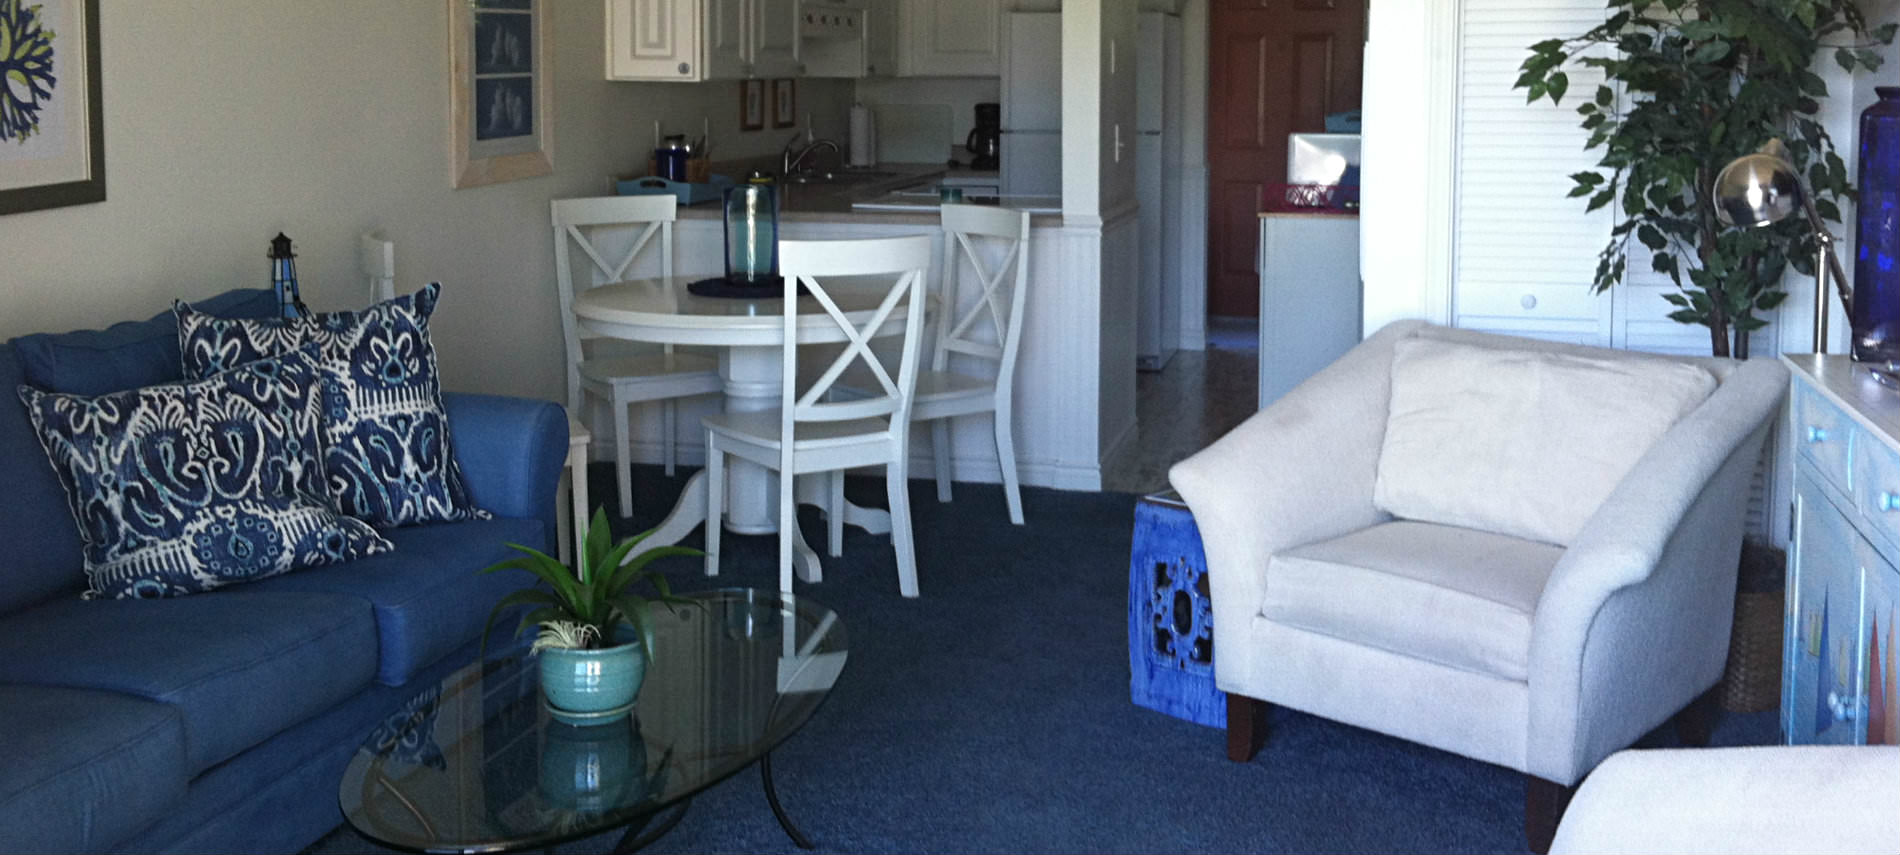 Round white table with 3 chairs, blue couch with pillows, white chair, kitchette.